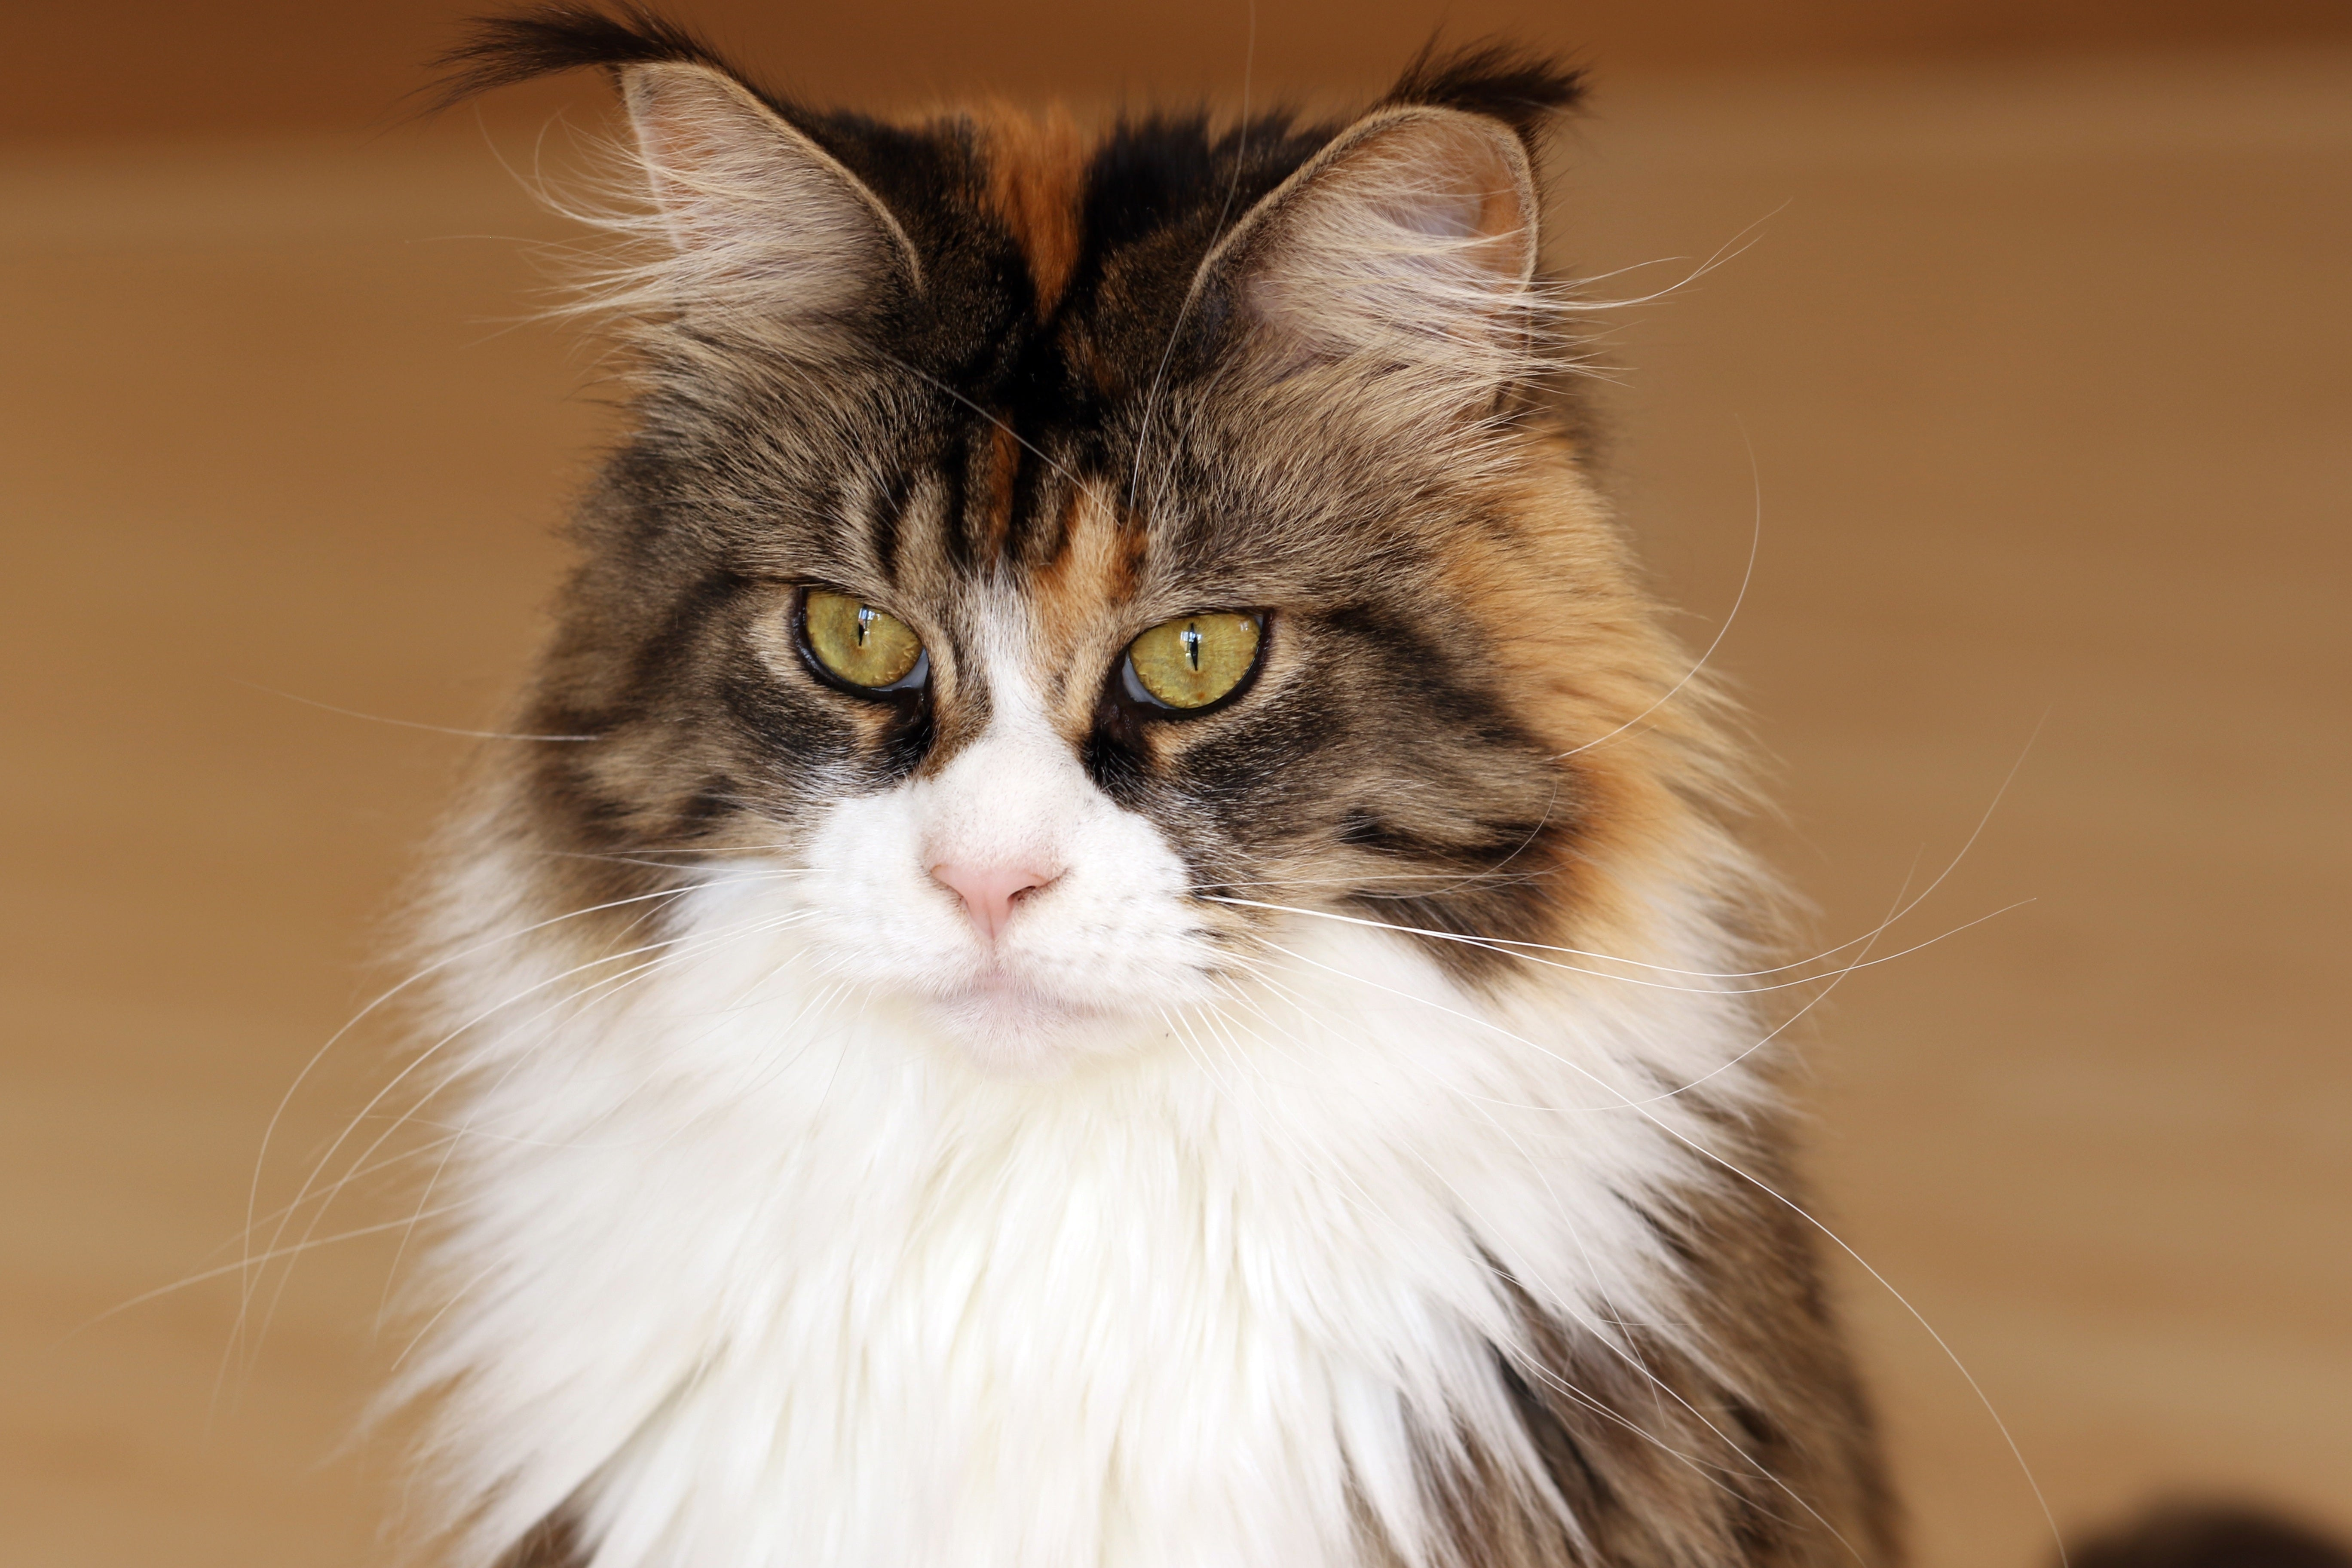 Cat coat genetics: A tricolor cat with long fur